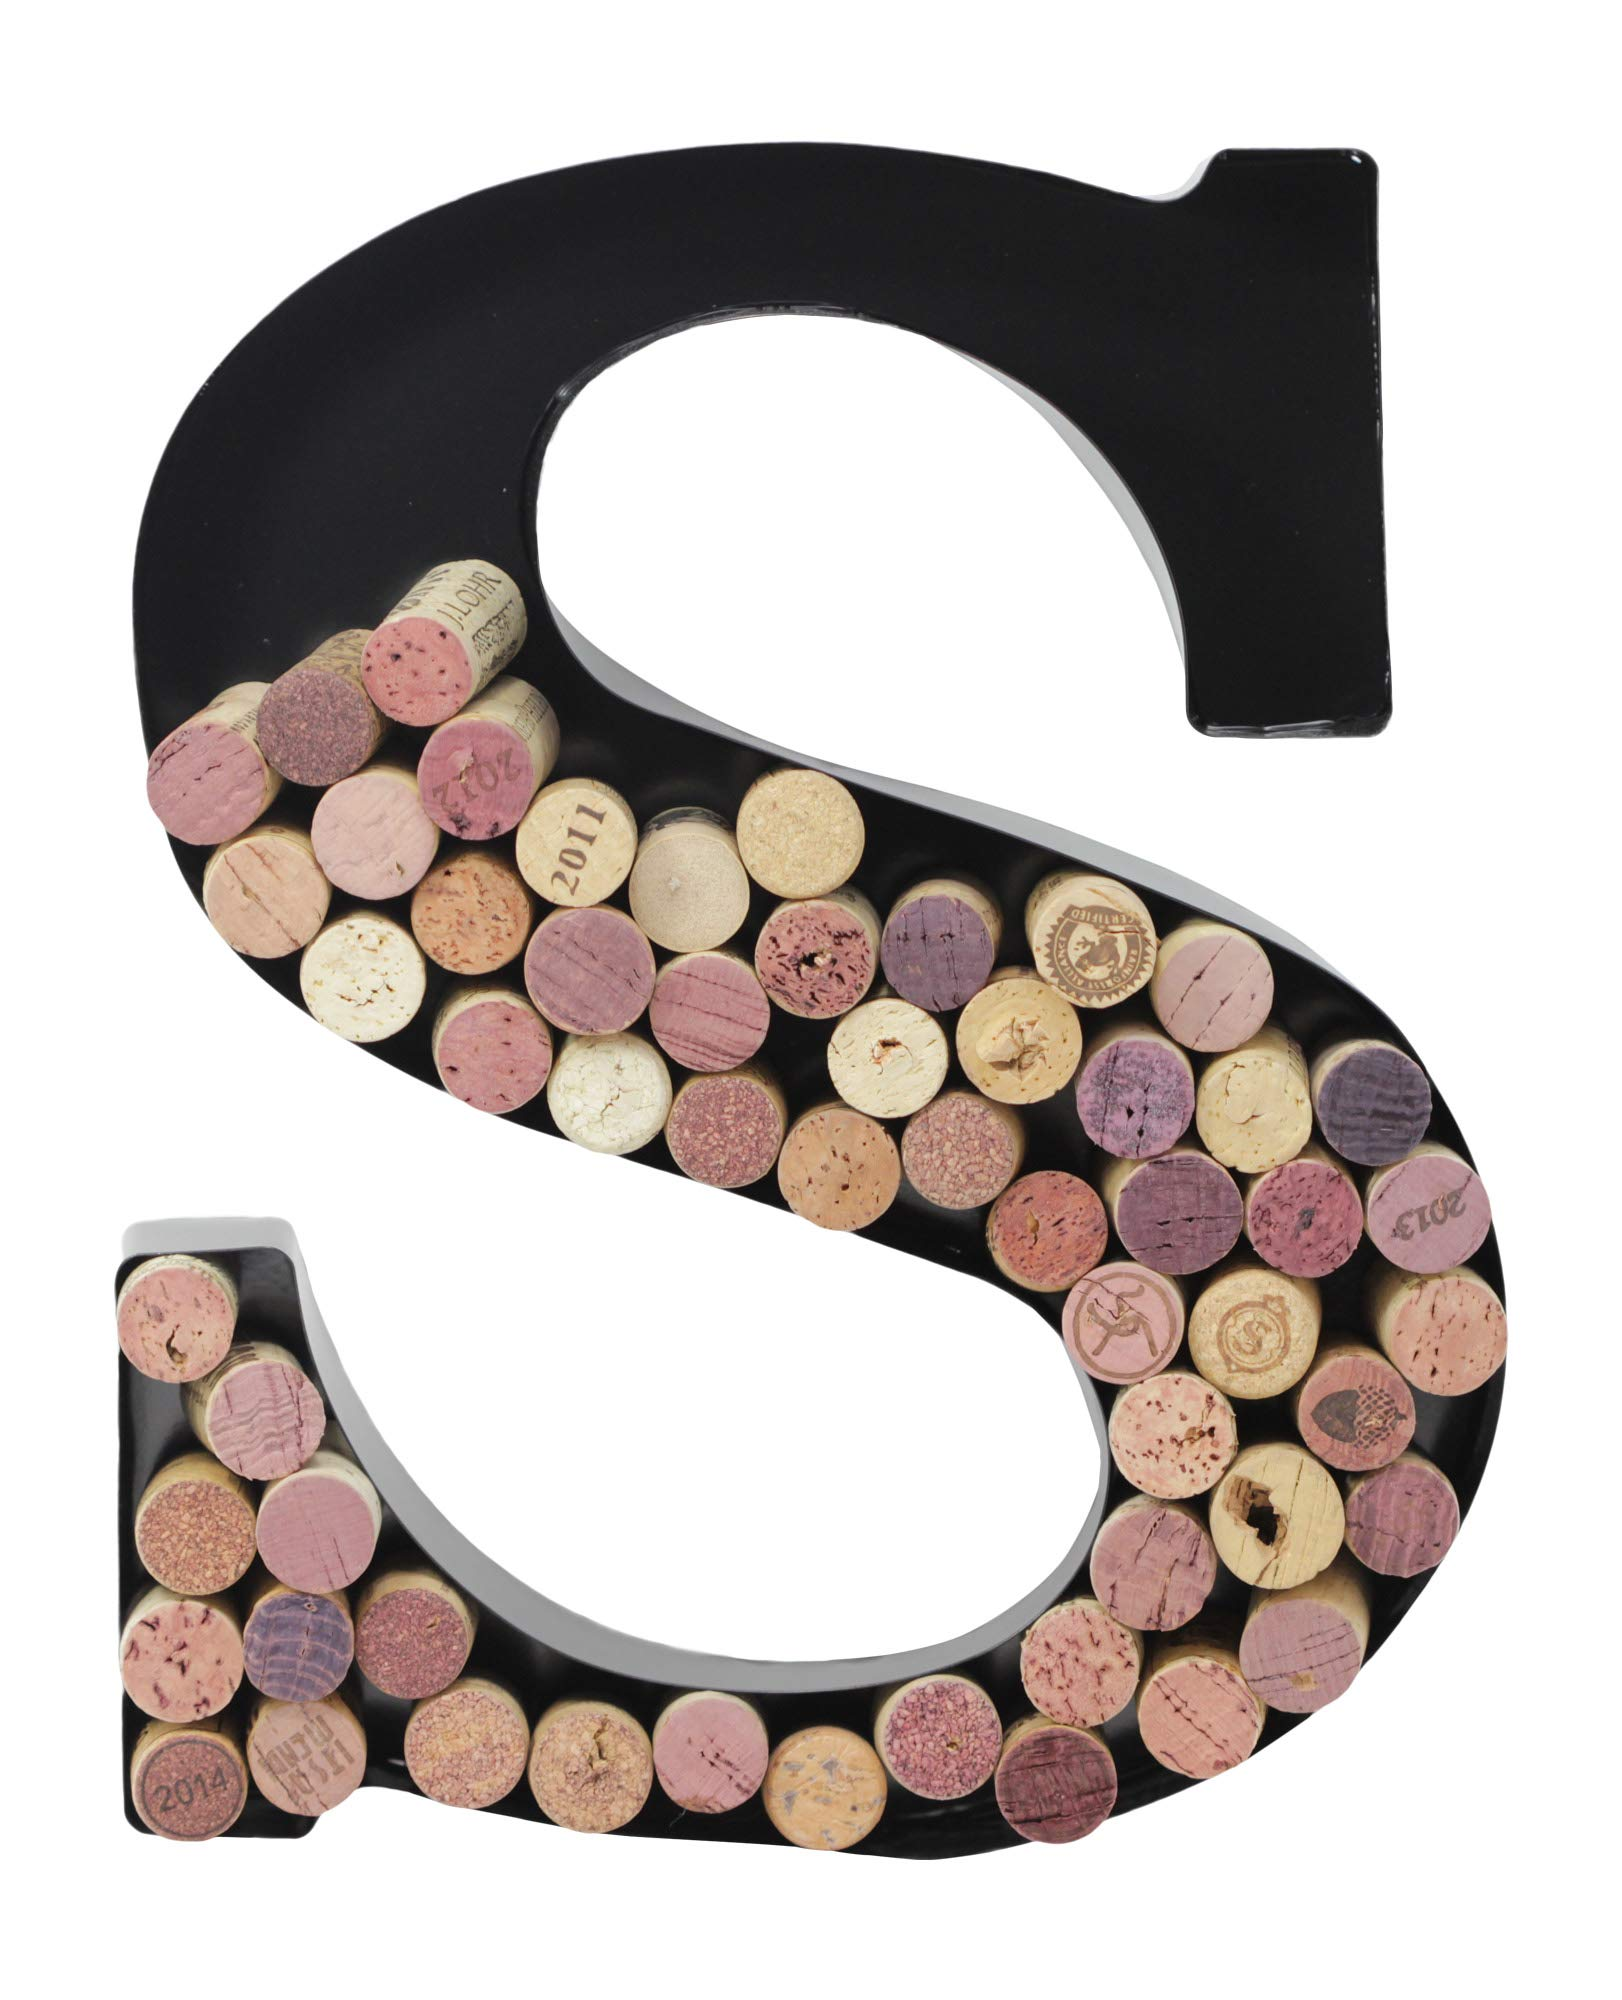 Metal Letter Wine Cork Keepsake Saver & Holder Monogram w/Free Wall Mount Kit A-Z, (S)